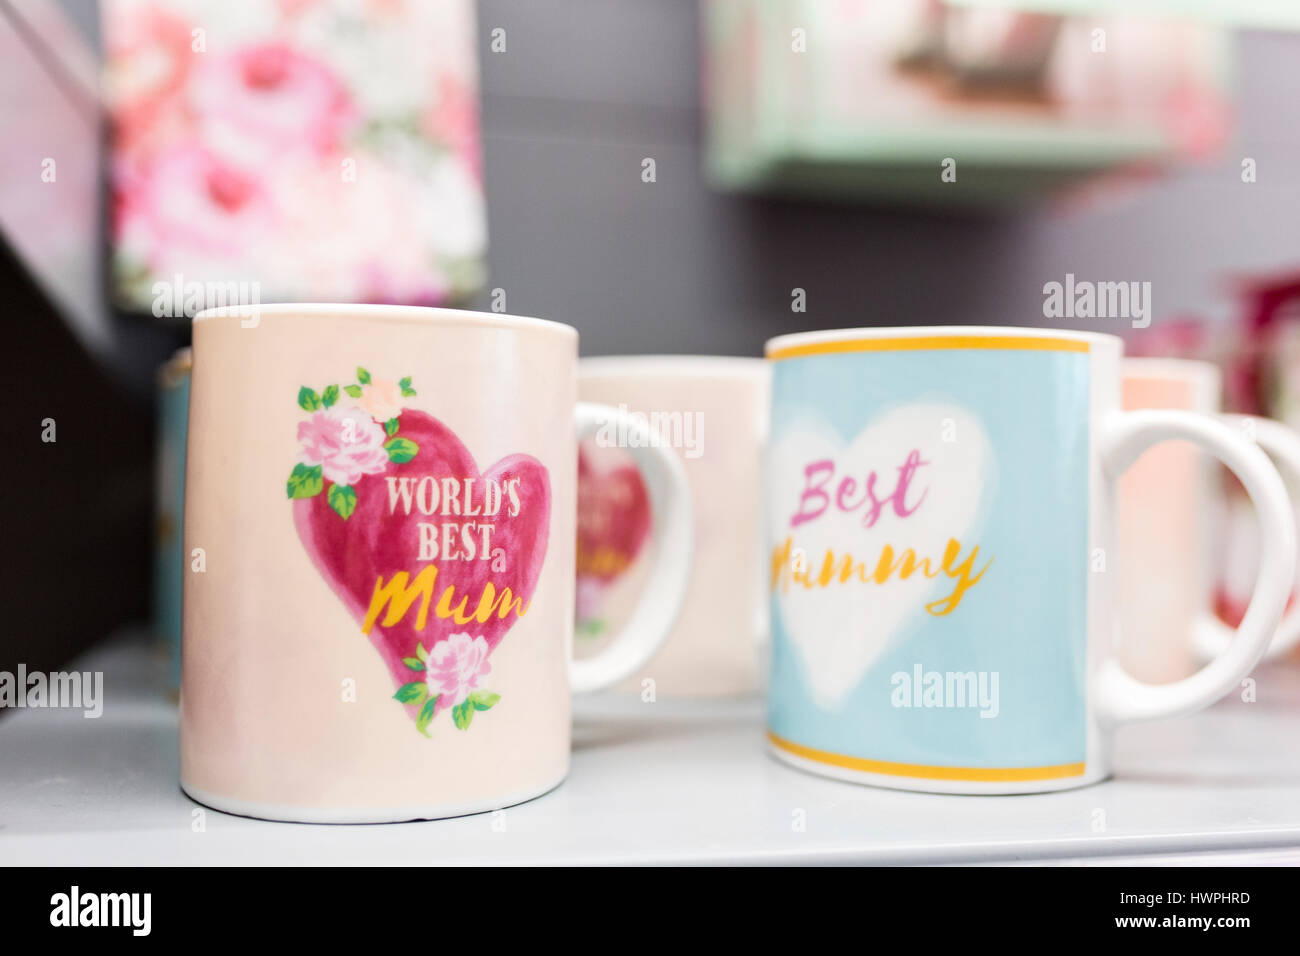 Mother's Day mugs for sale in a British supermarket - Stock Image